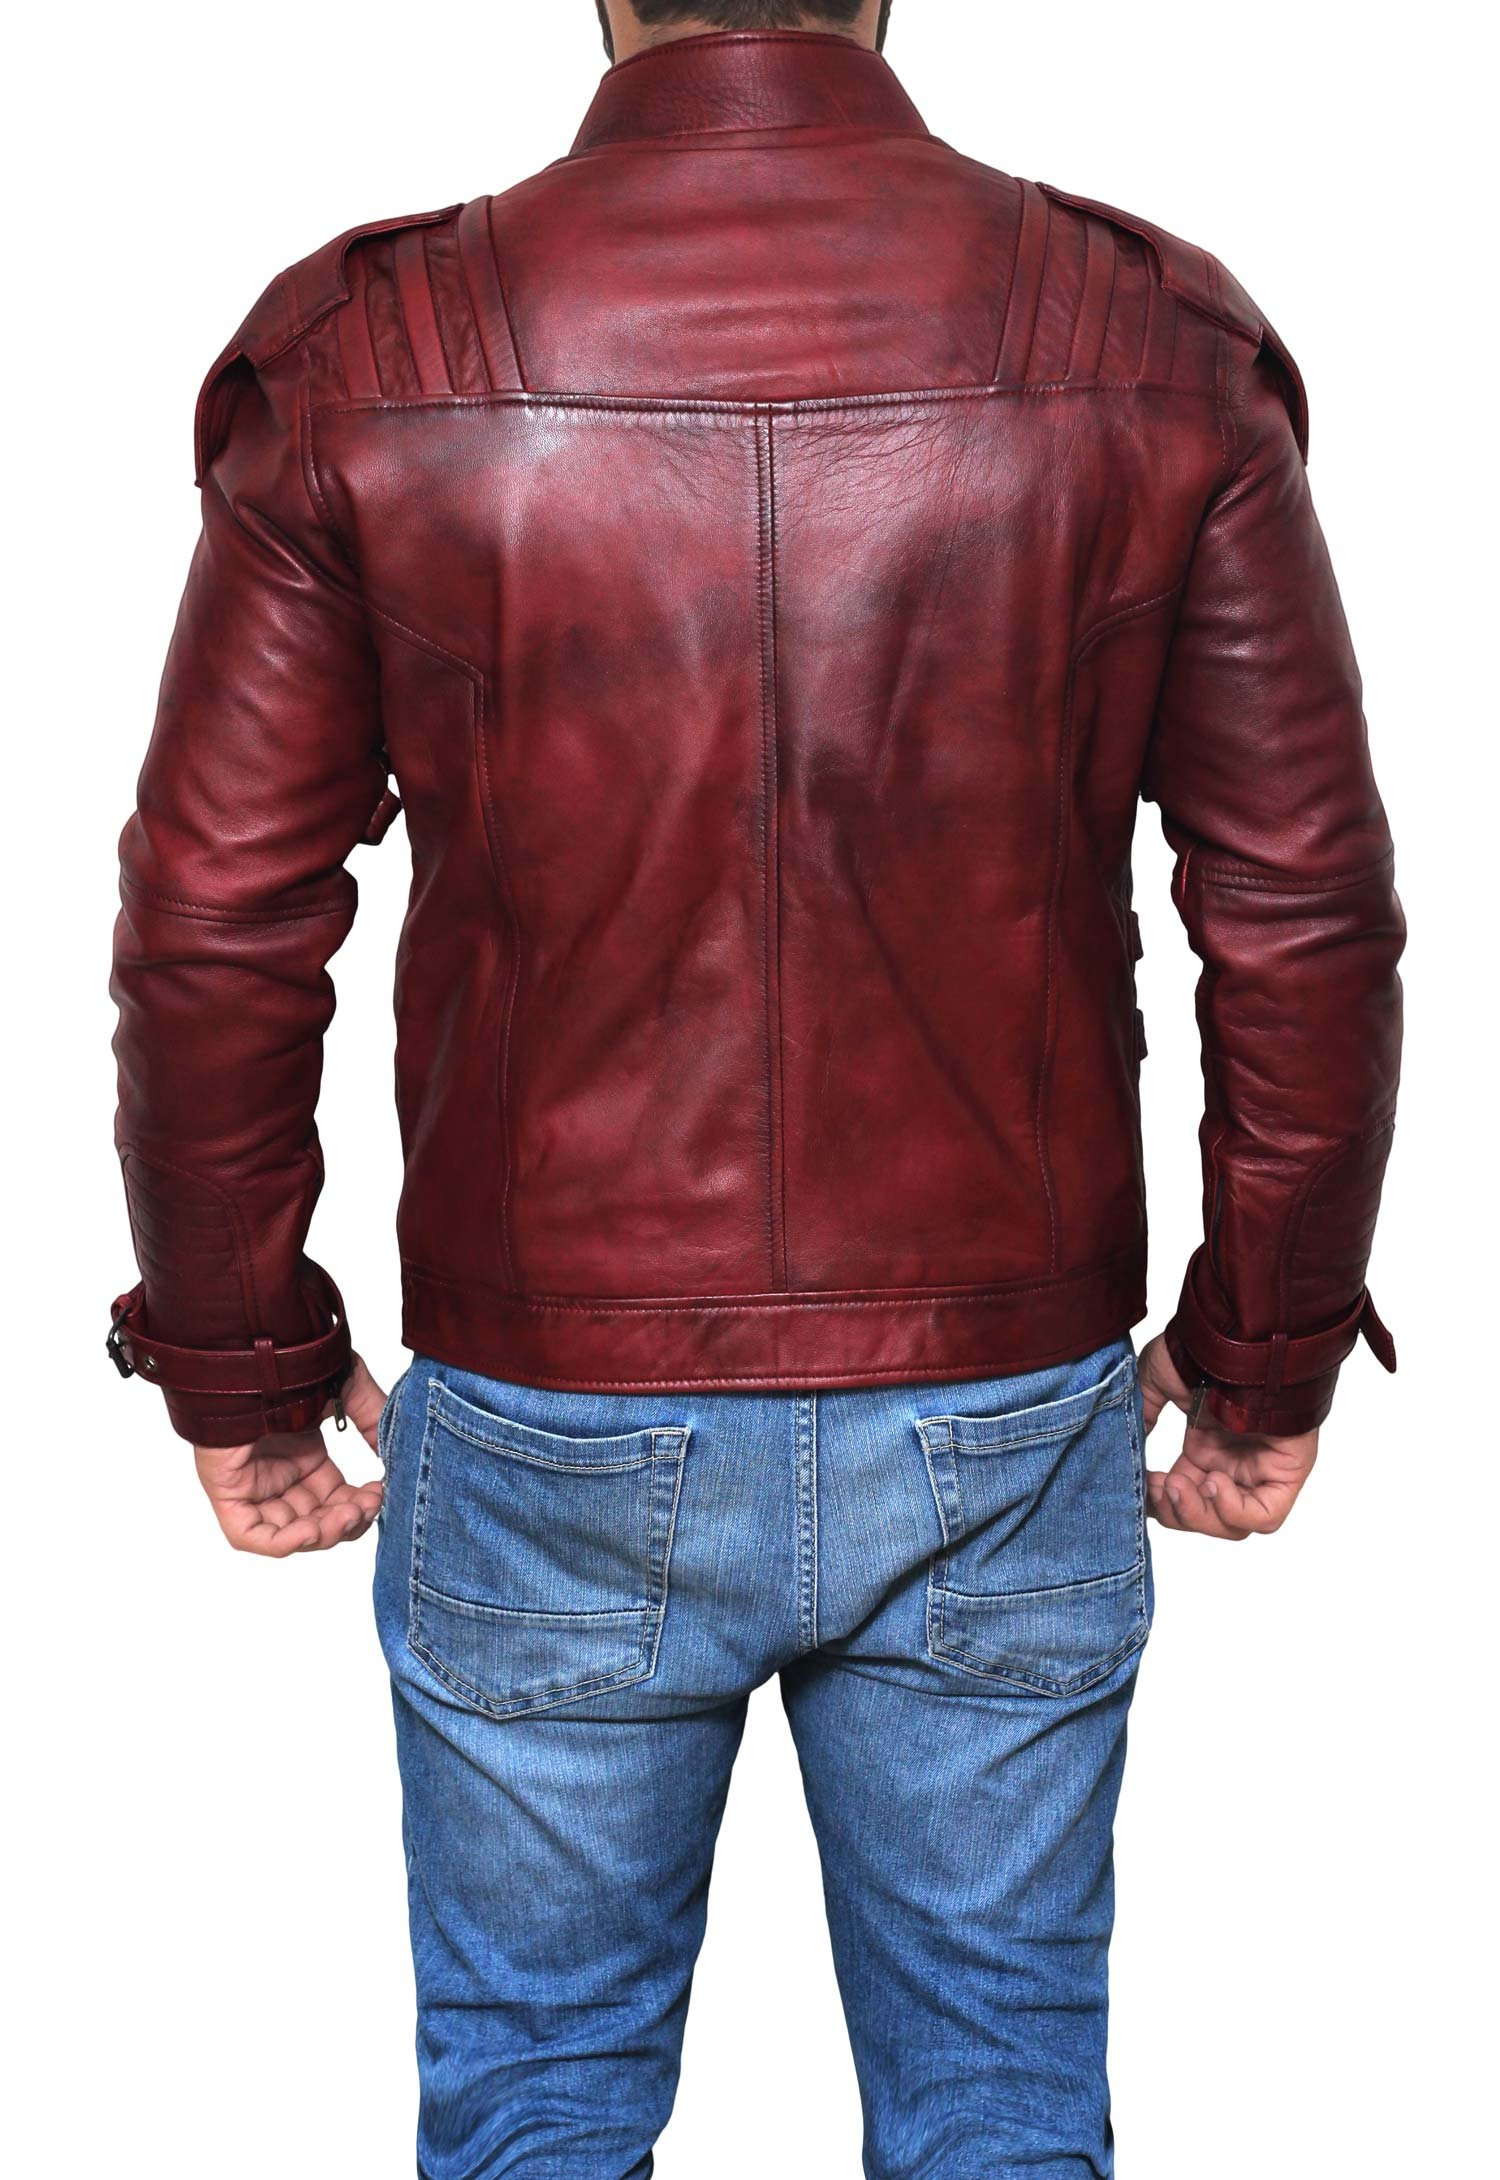 Galaxy Real Leather Jacket ►BEST SELLER◄ M by fjackets (Image #1)